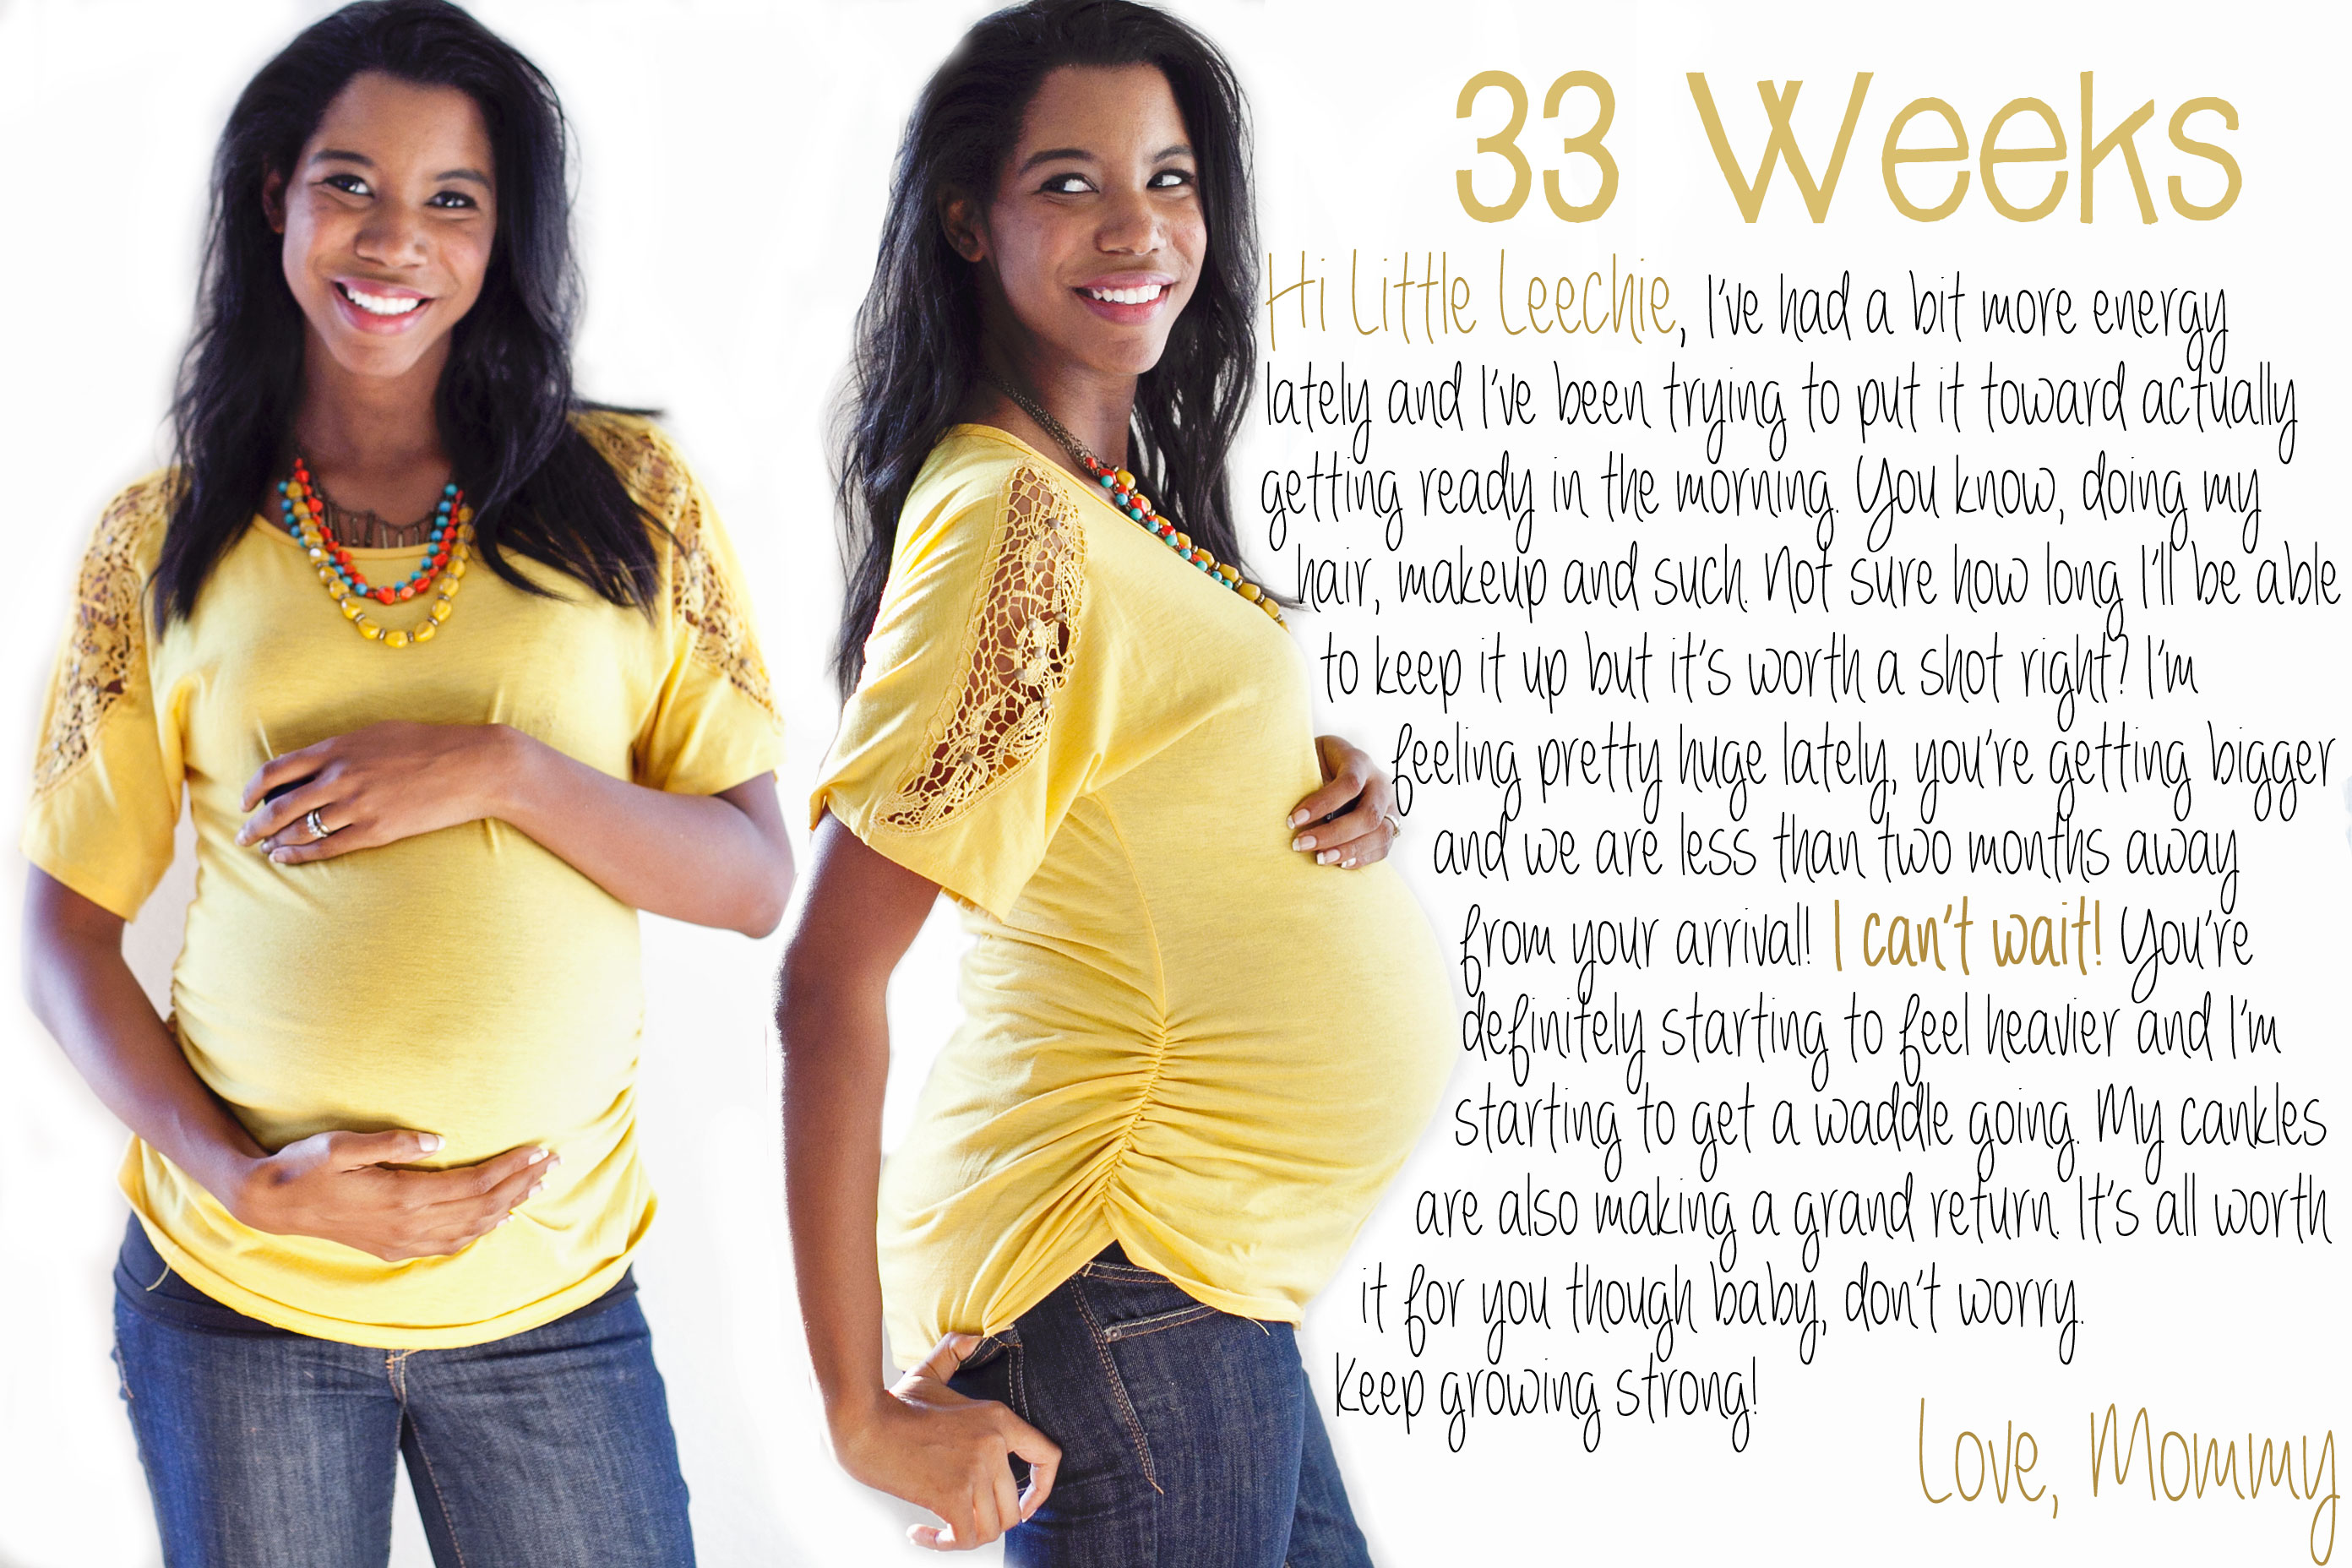 weekly pregnancy photo ideas - 33 weeks Archives Baby Making Machine